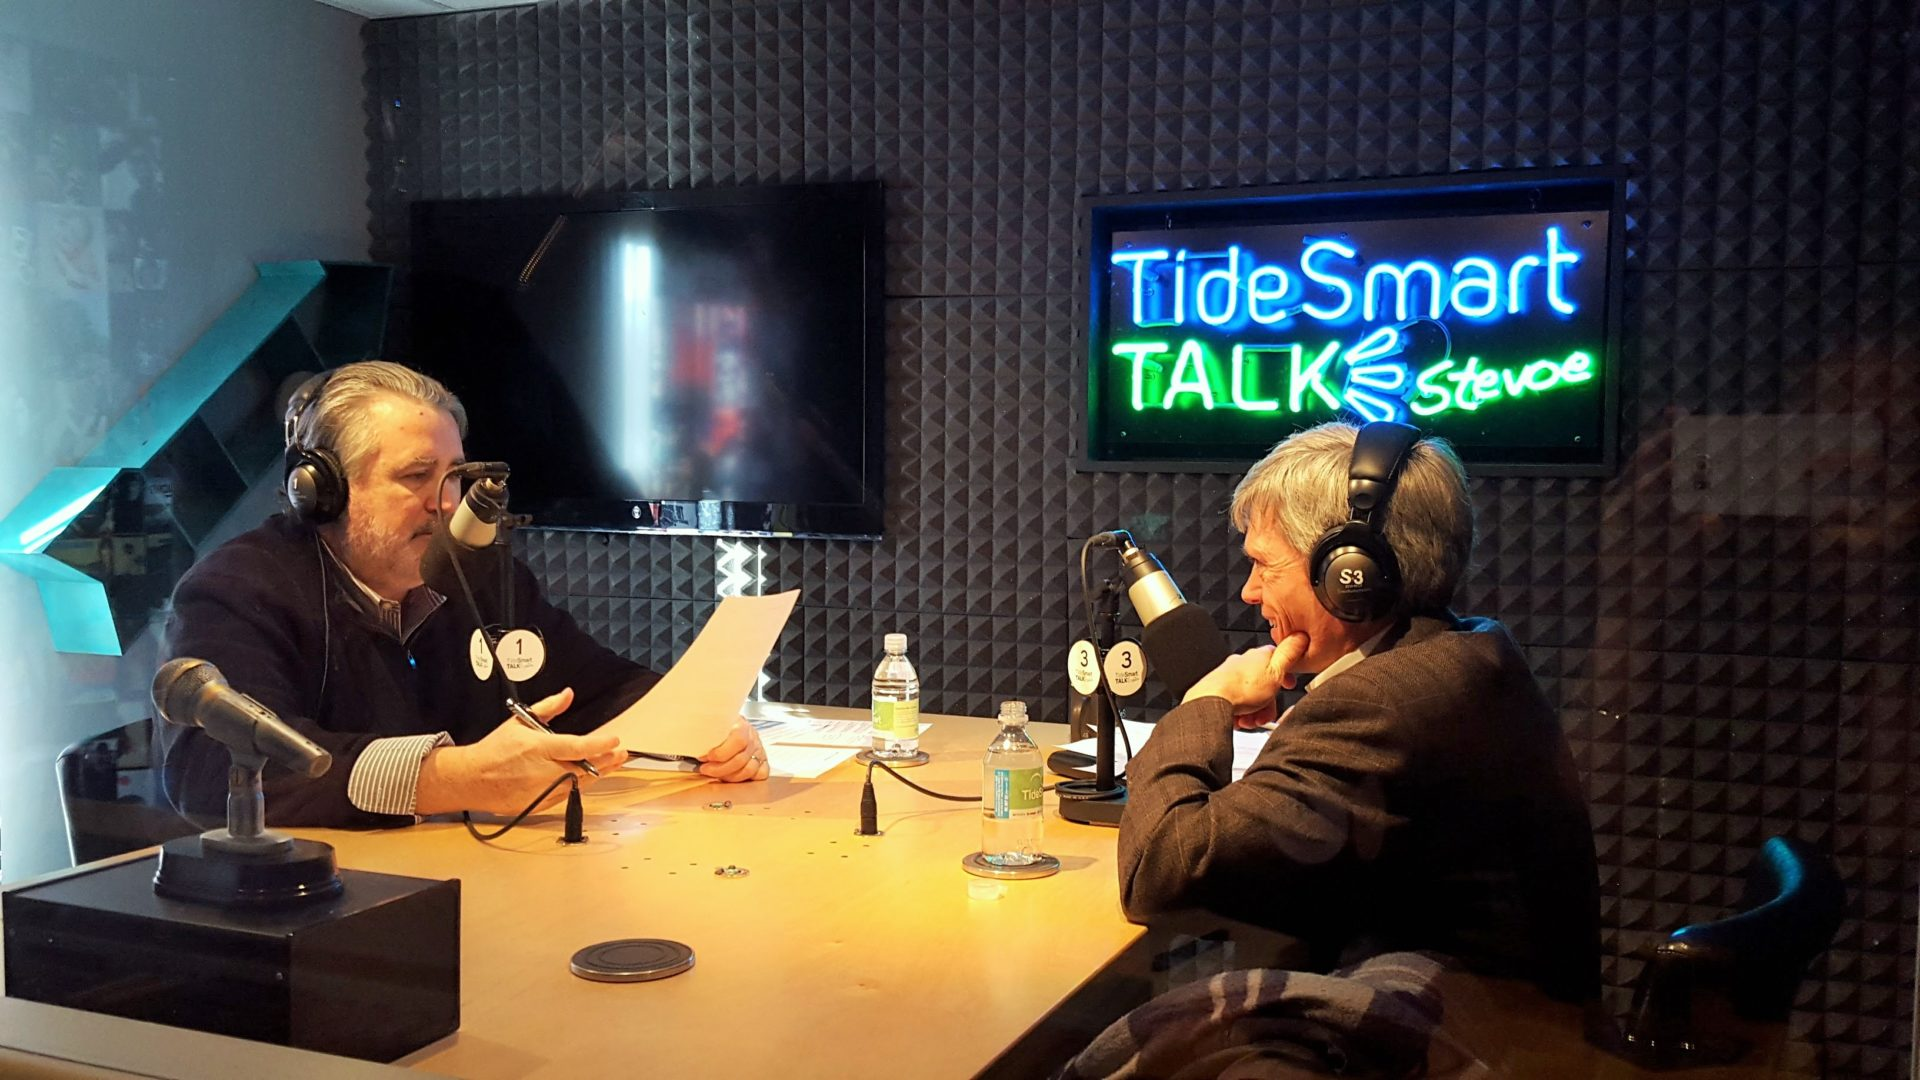 Host of TideSmart Talk with Stevoe, Steve Woods, welcomed Director of the Portland International Jetport, Paul Bradbury (at right).